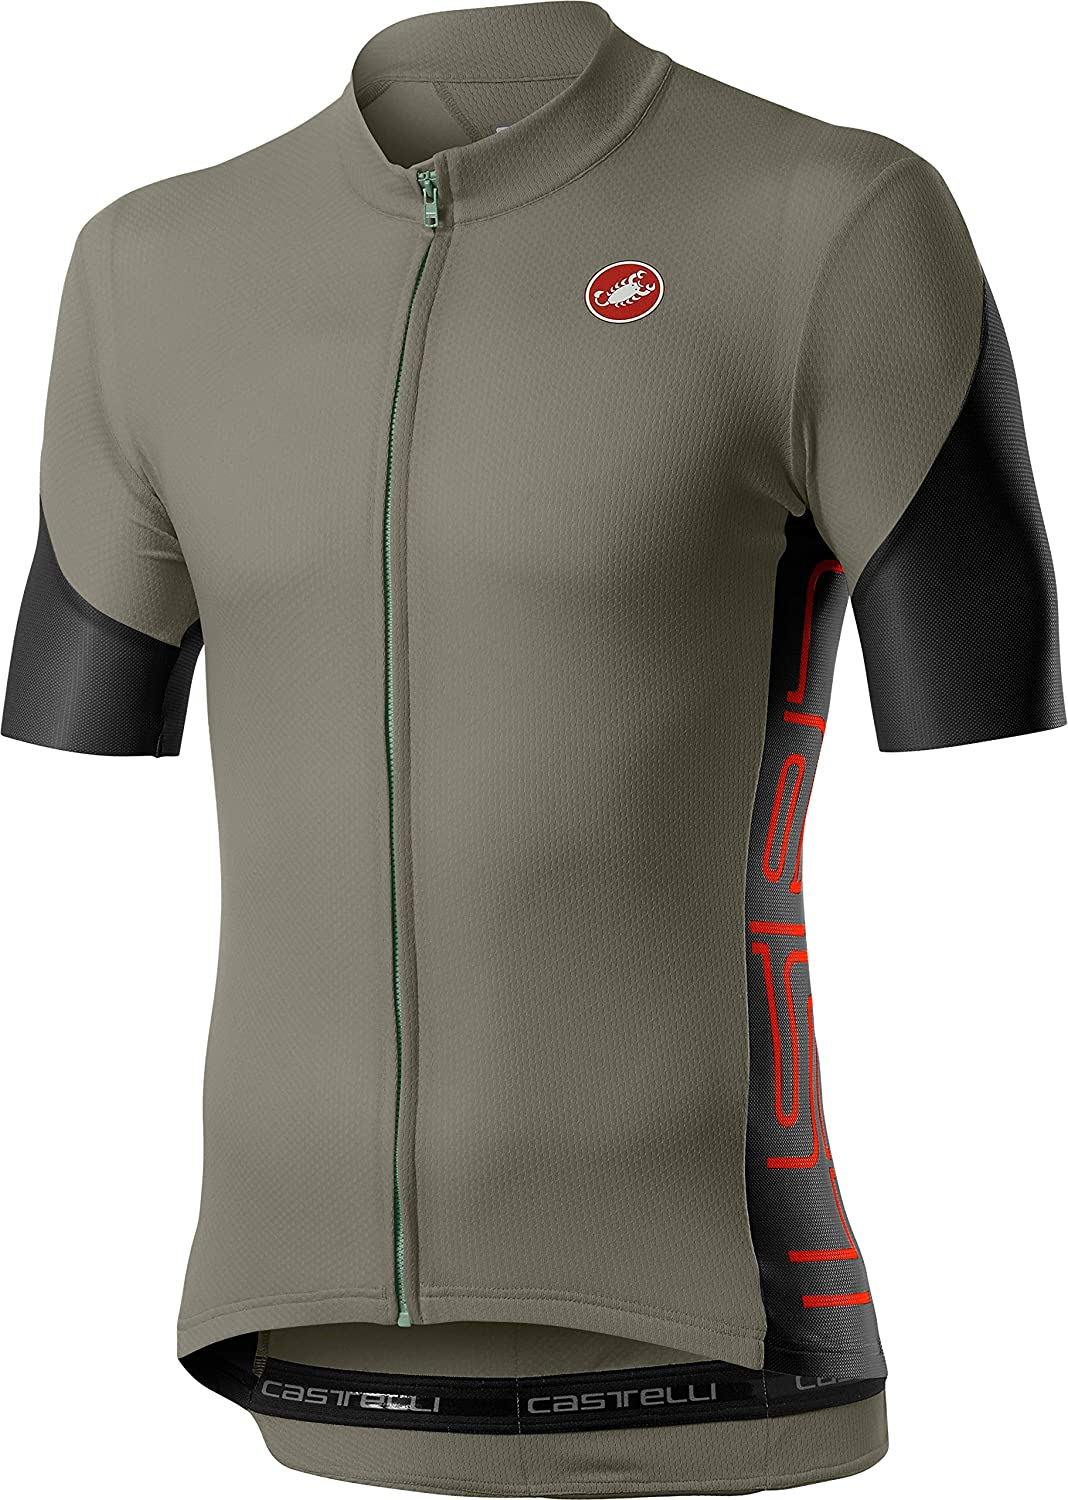 Castelli Cycling Competizione Bibshort for Road and Gravel Biking l Cycling